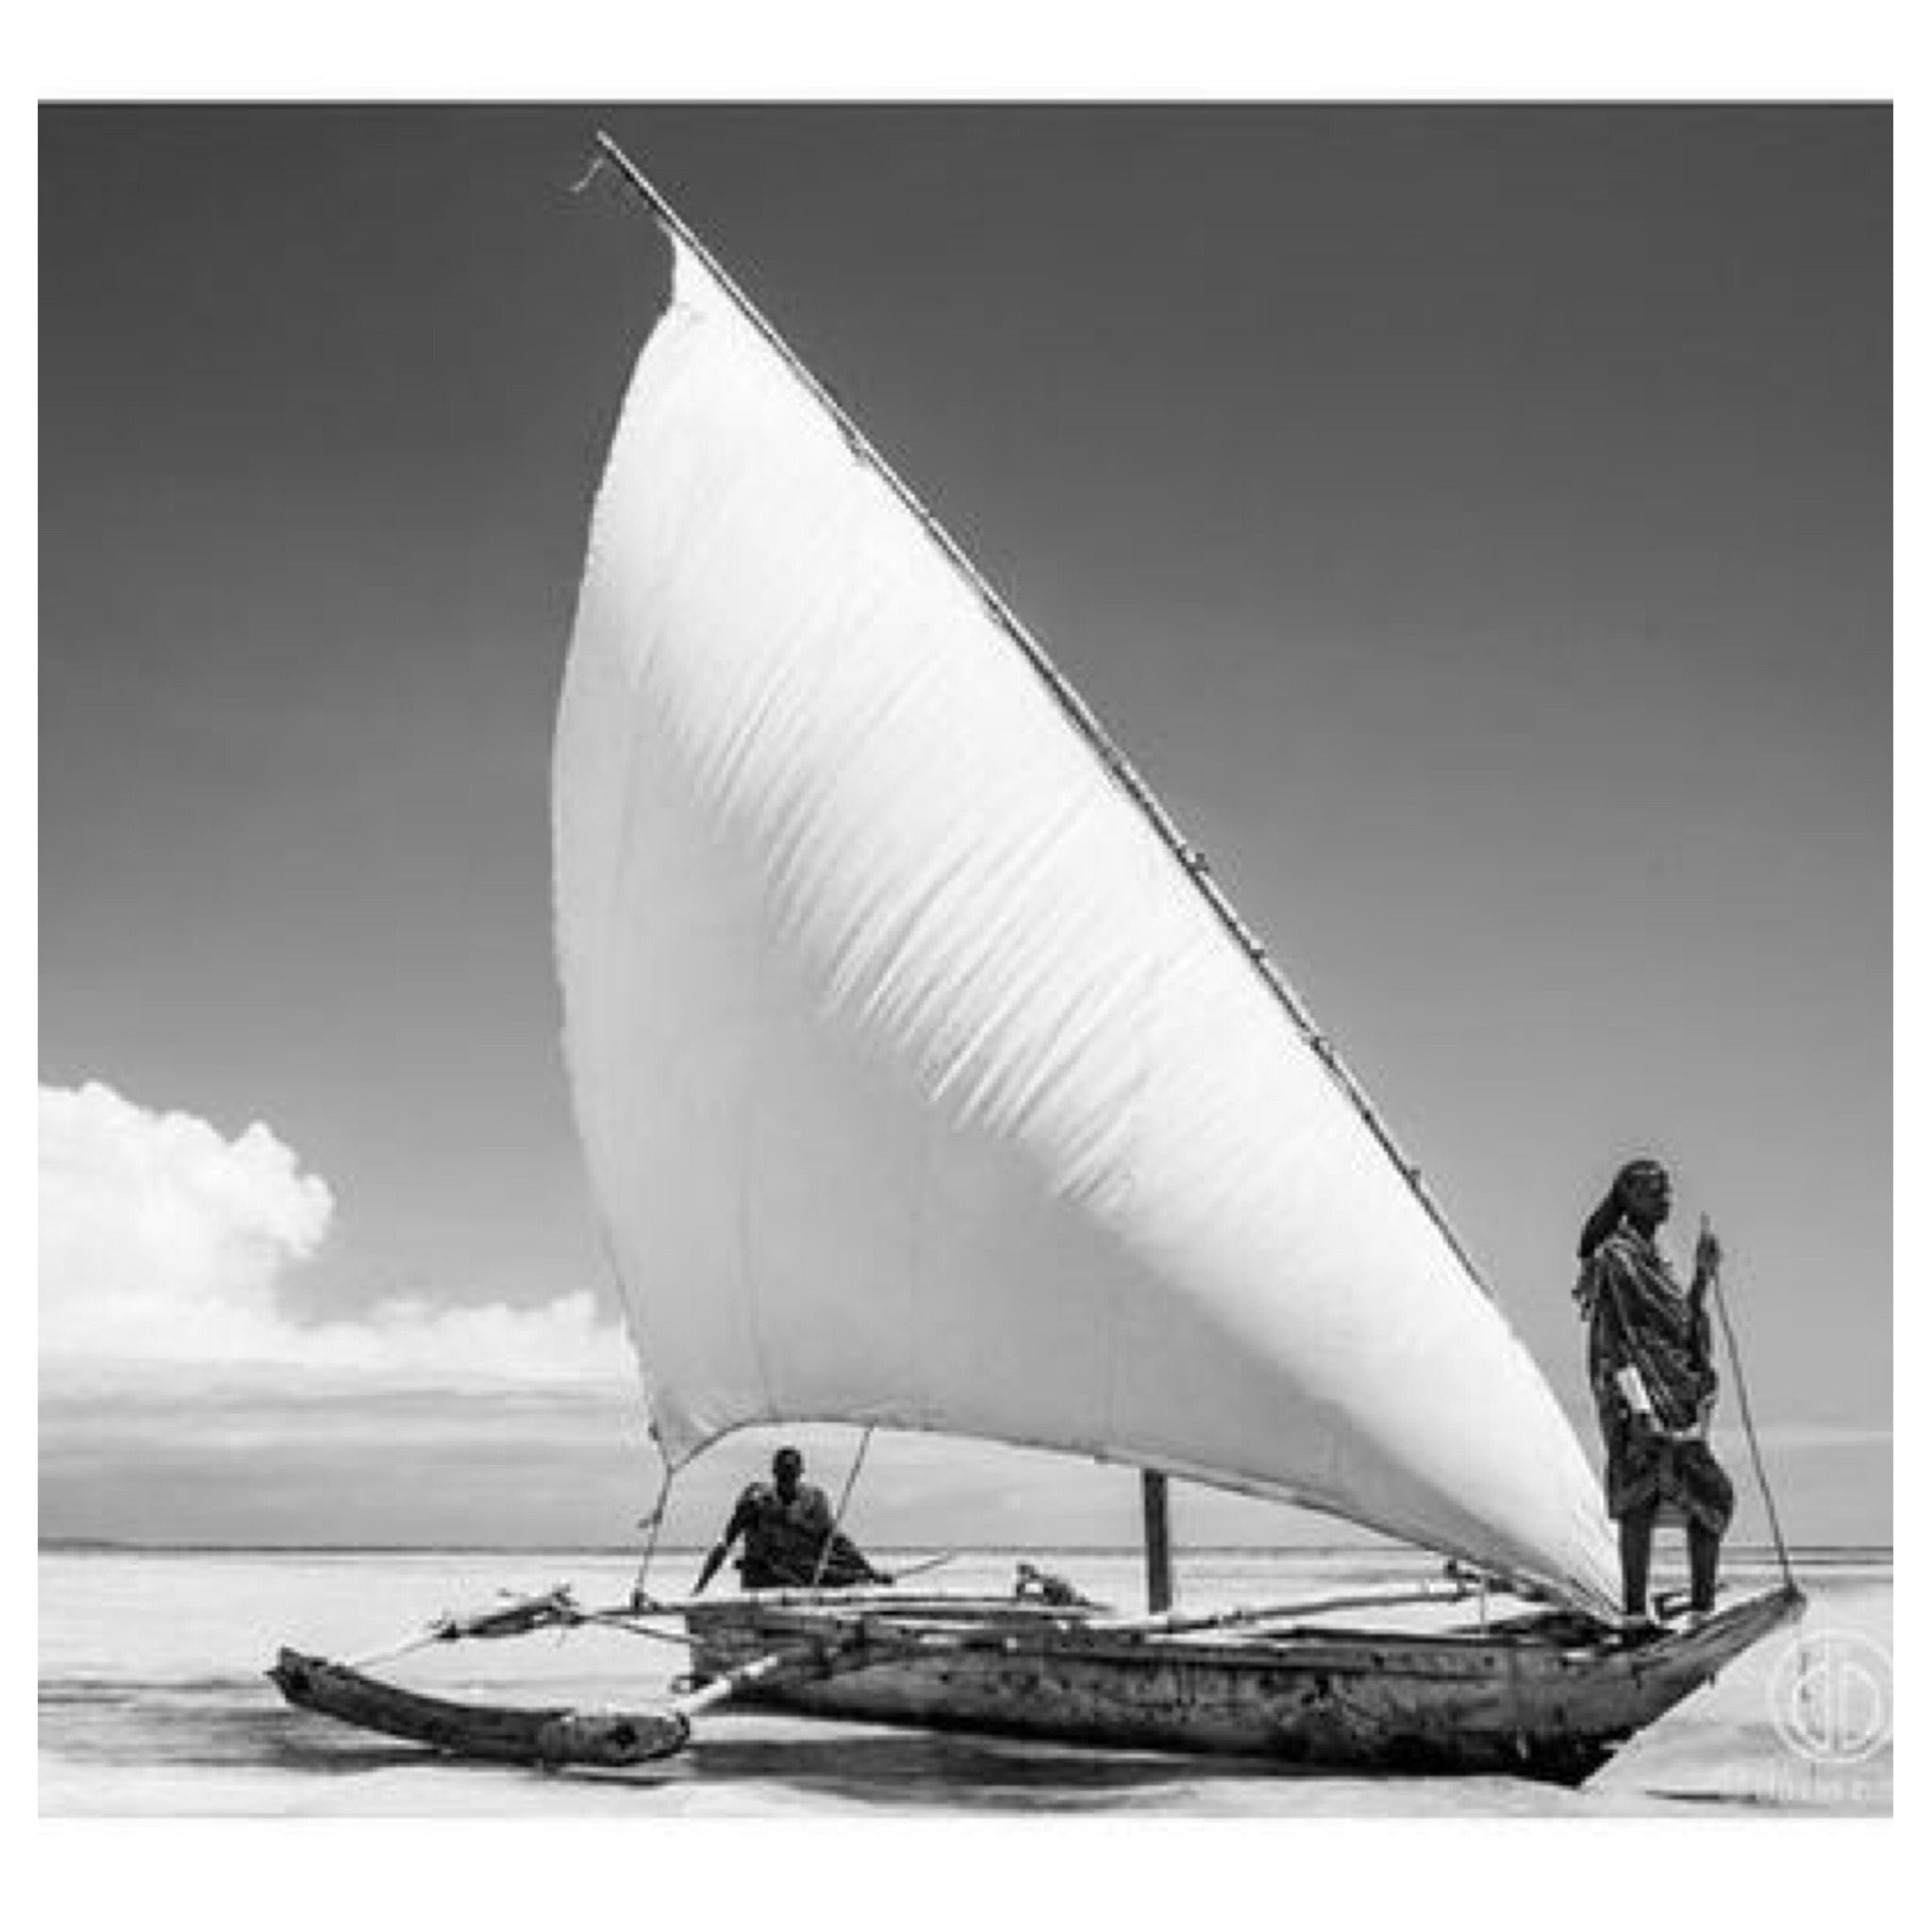 2 masai sailing david ballam artwork print black and white timber frame